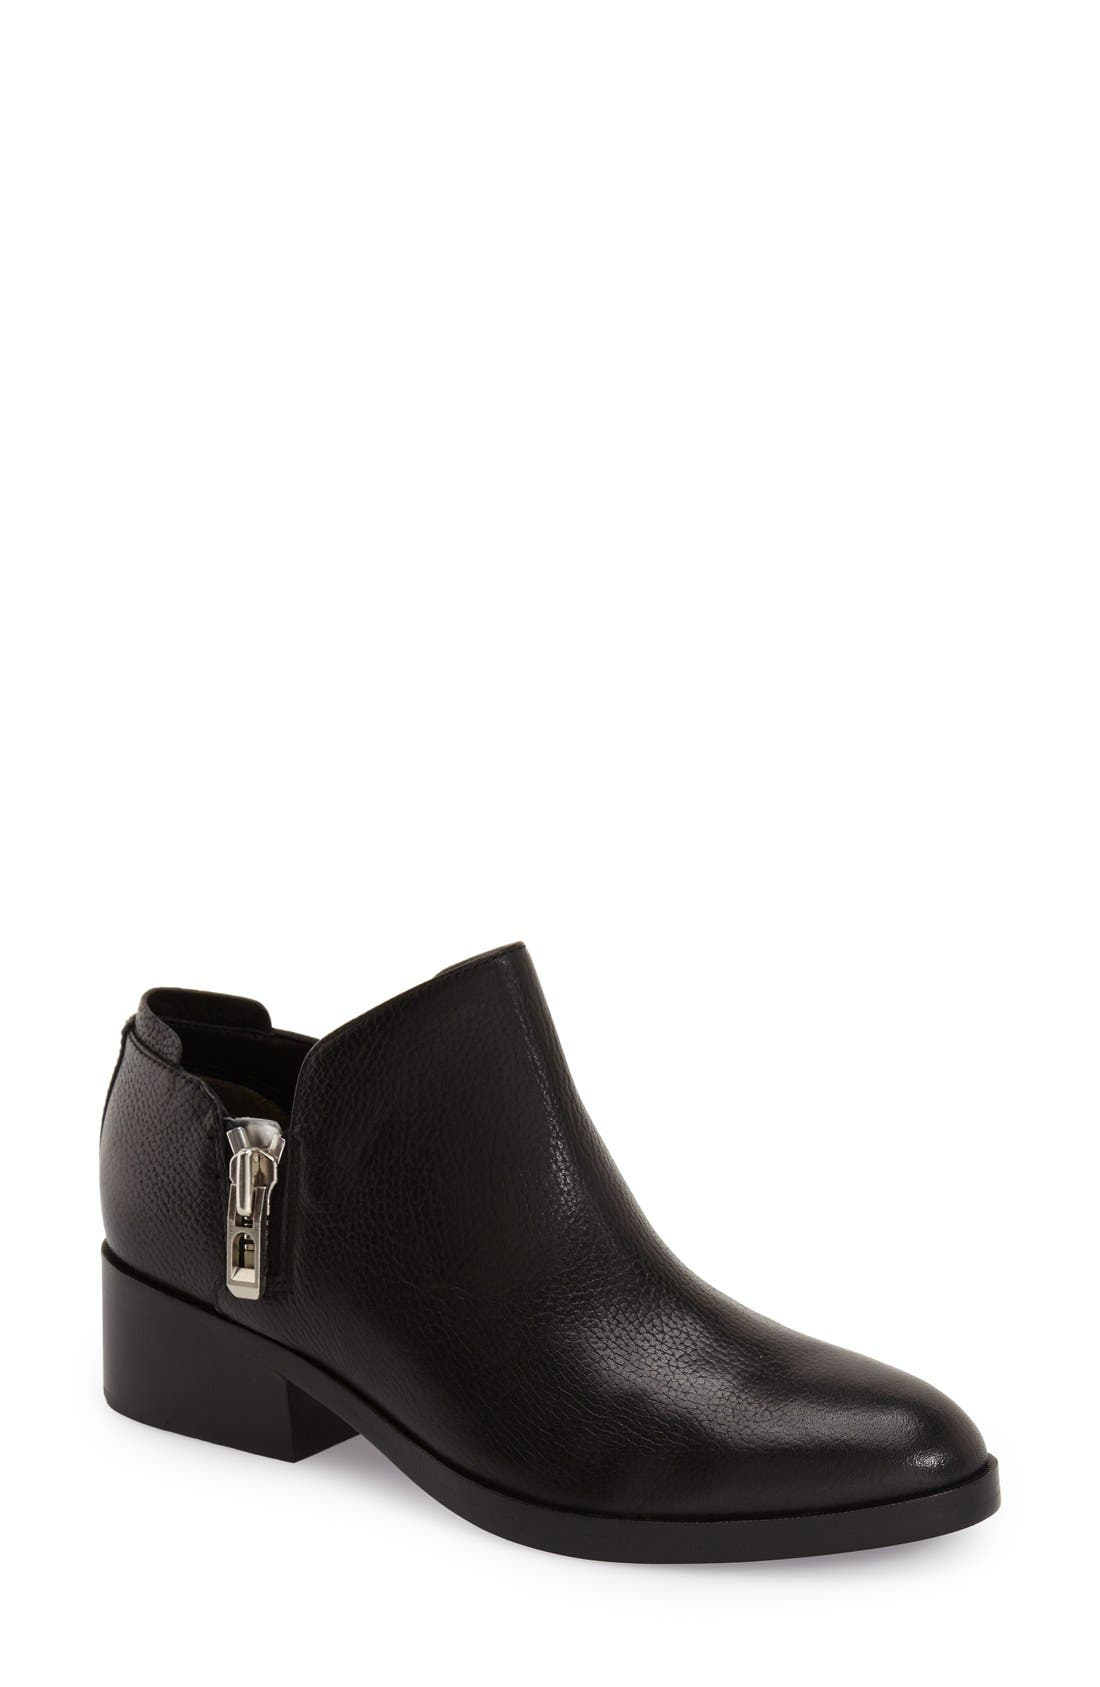 Alexa Zip Bootie,                         Main,                         color, Black Leather